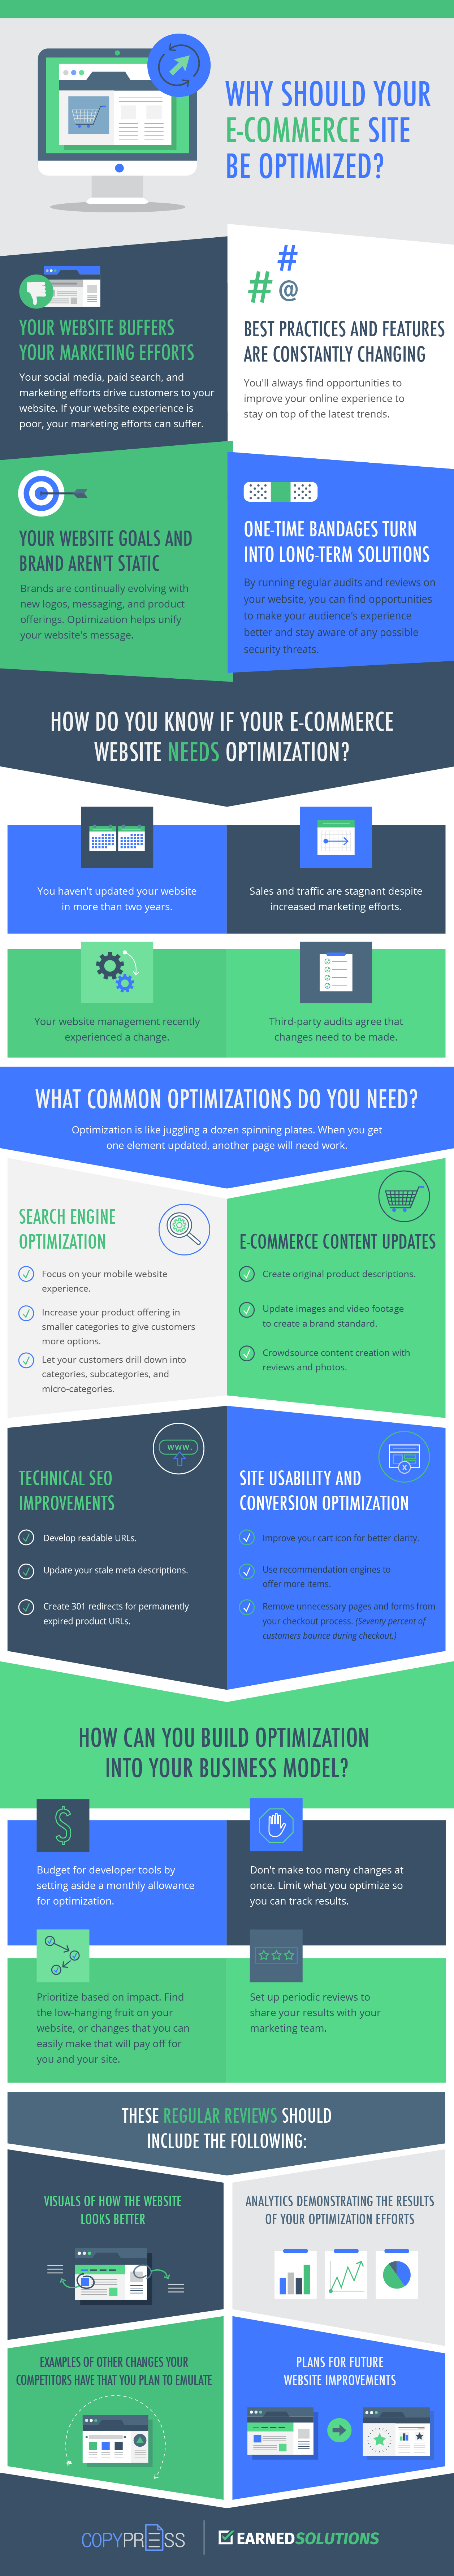 Ecommerce website optimisation infographic for Comms Axis_Learn why eCommerce site optimisation is a must by checking out this excellent infographic from CopyPress - if you need help with SEO, then give us a shout!